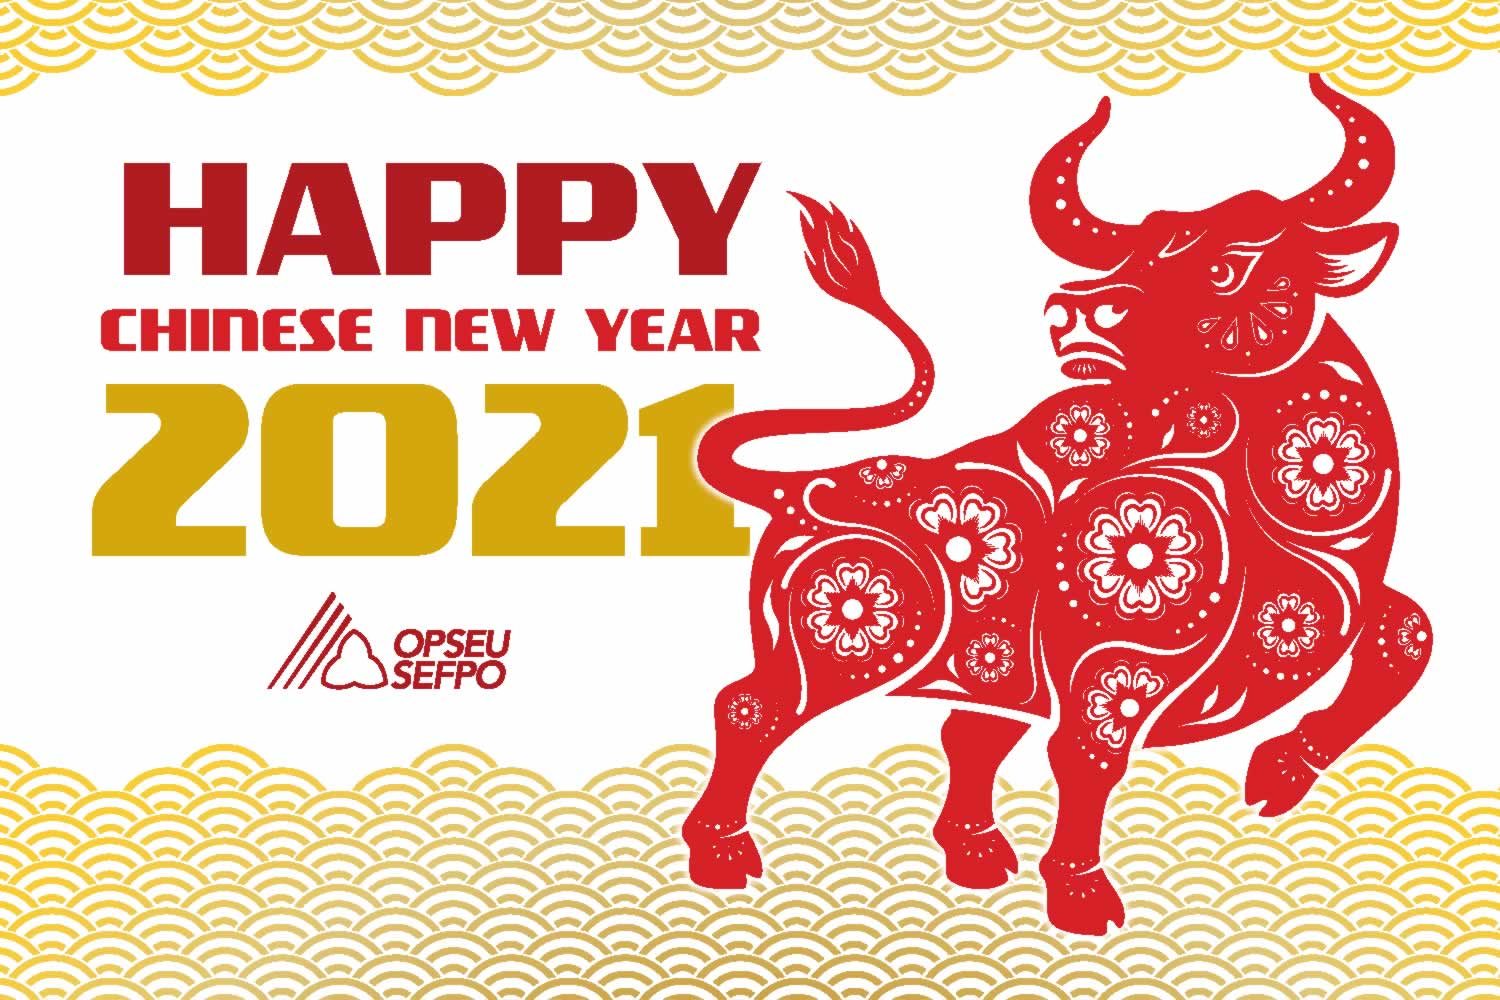 Happy Chinese New Year 2021, with decorative image of an Ox